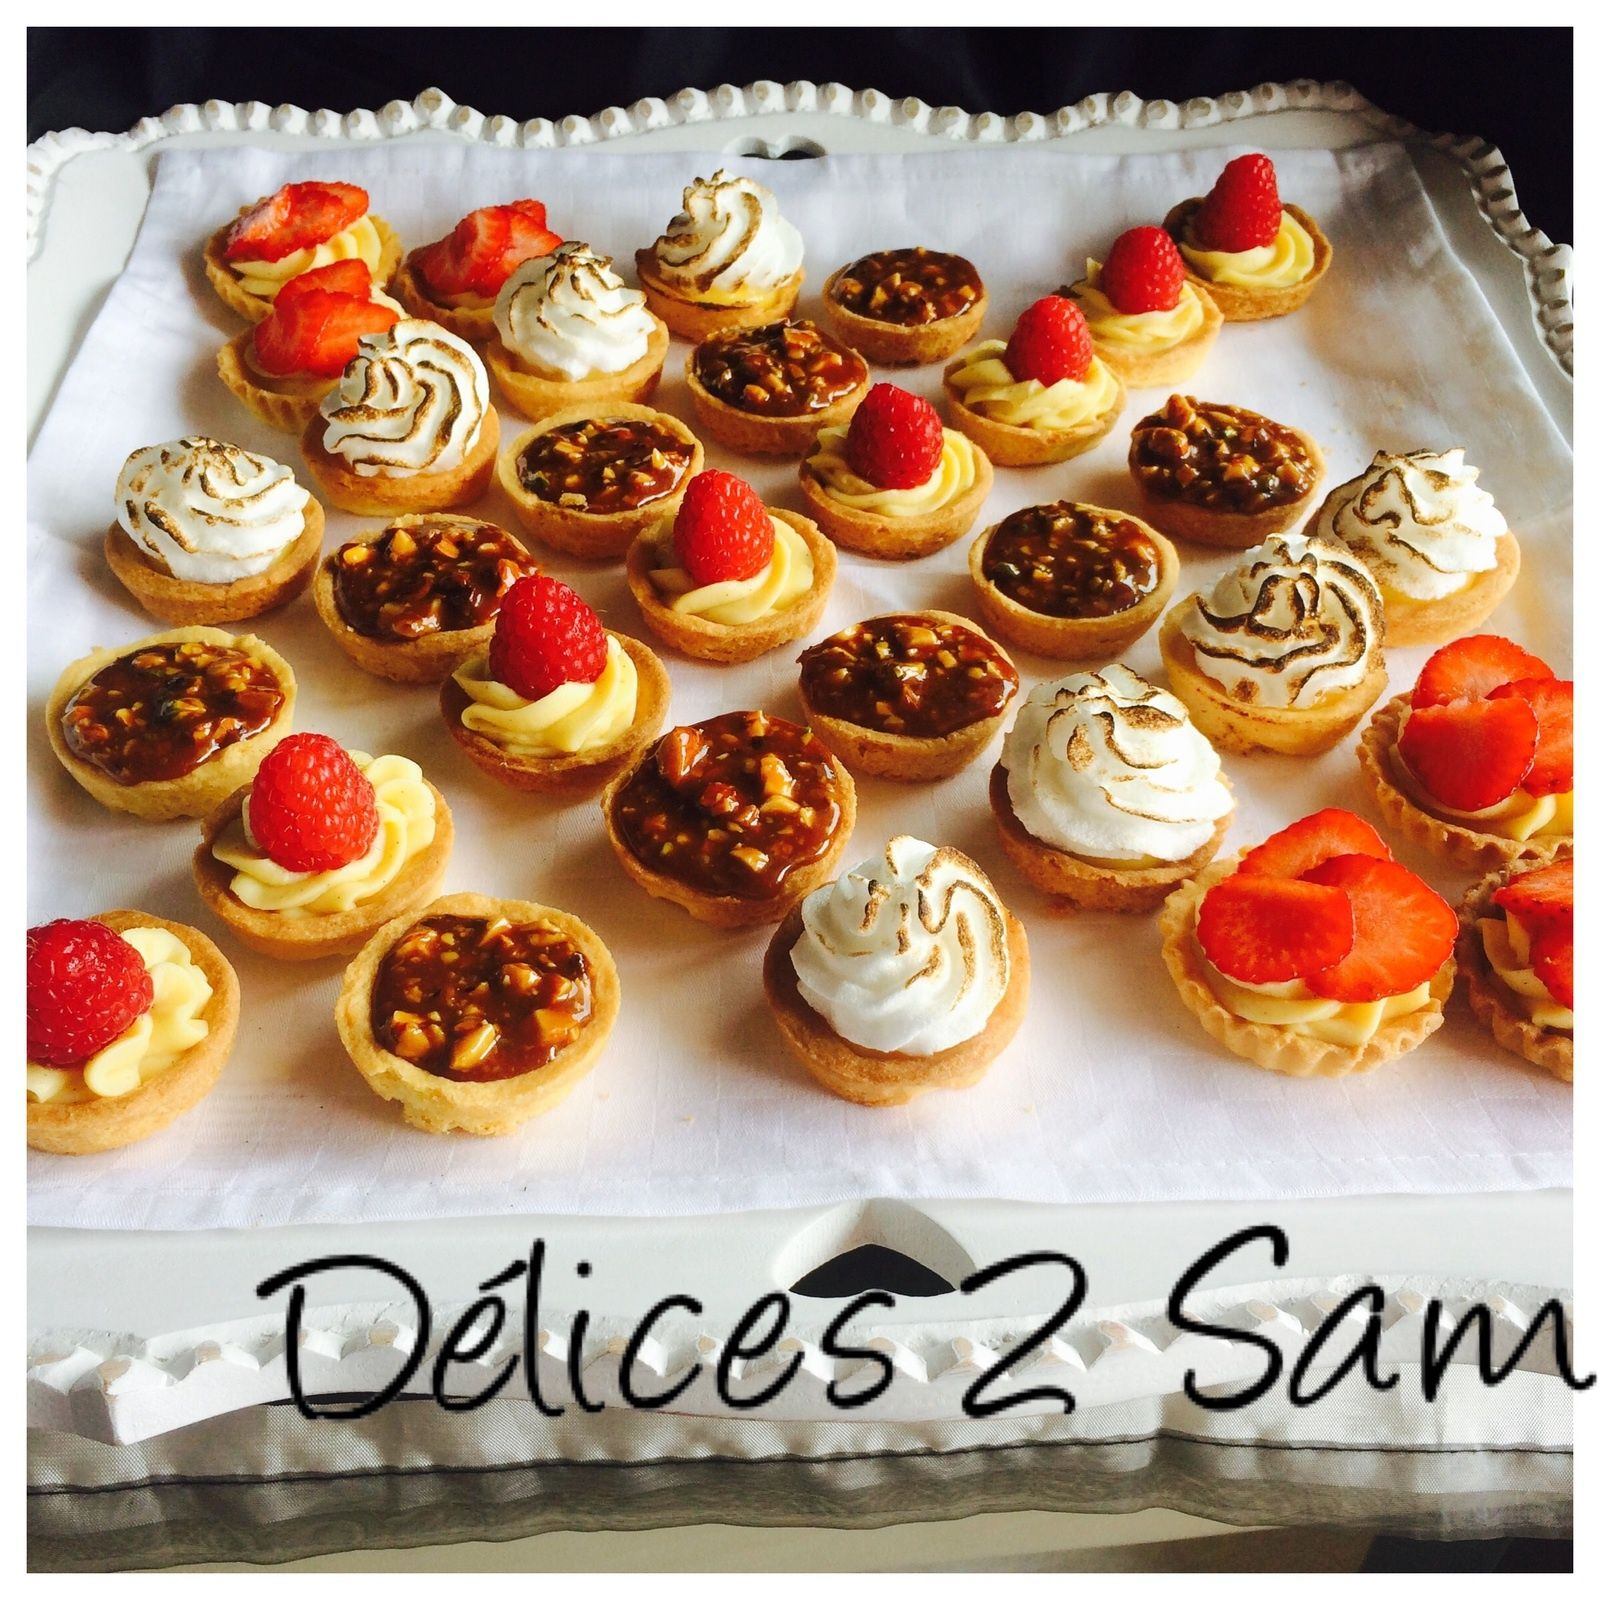 Mini tartelettes - Delices de Sam #turtlecheesecakerecipes